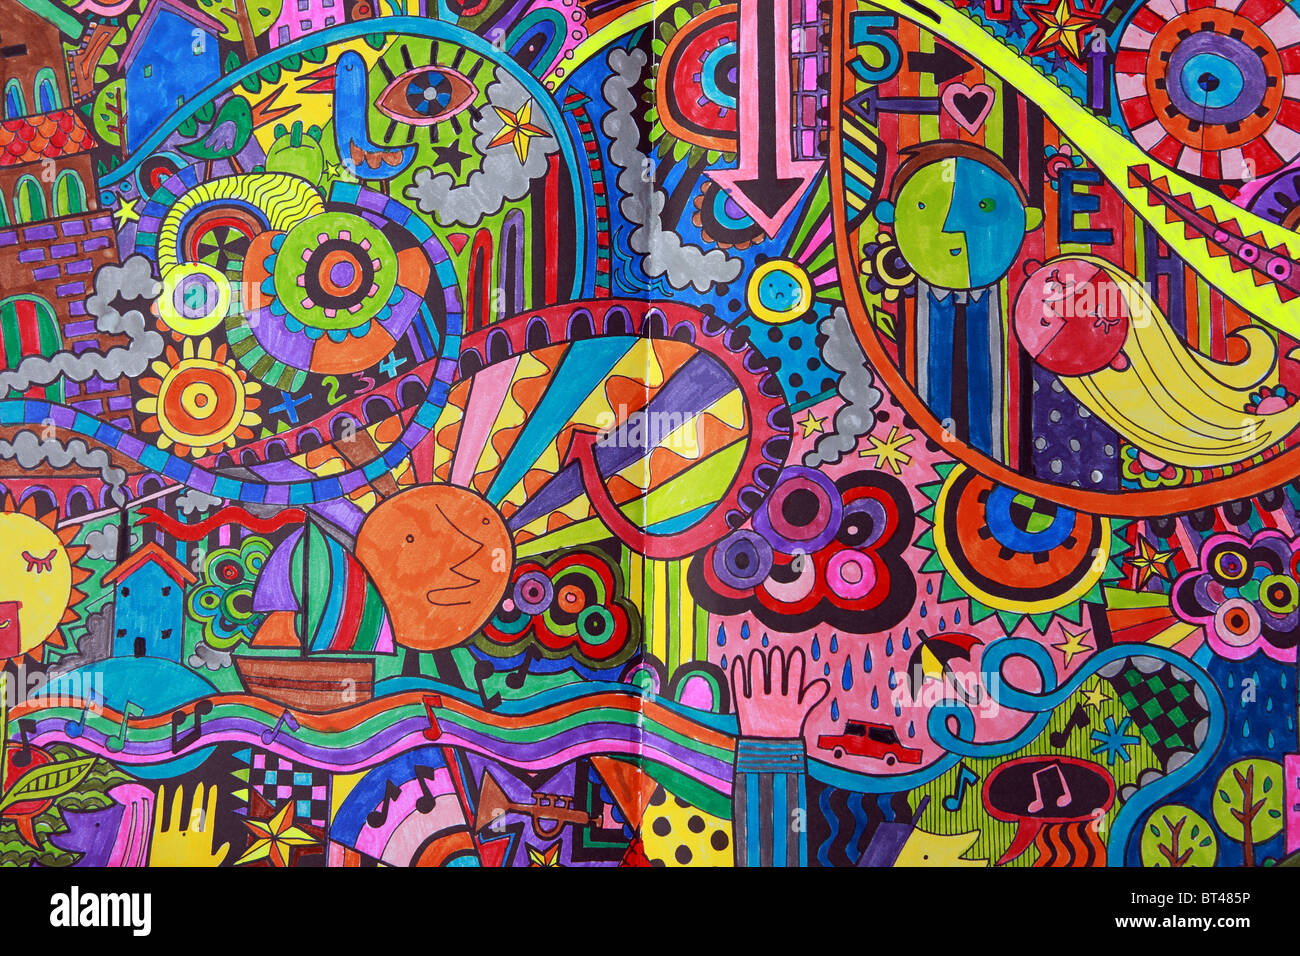 Psychedelic colouring in pictures by children - Stock Image